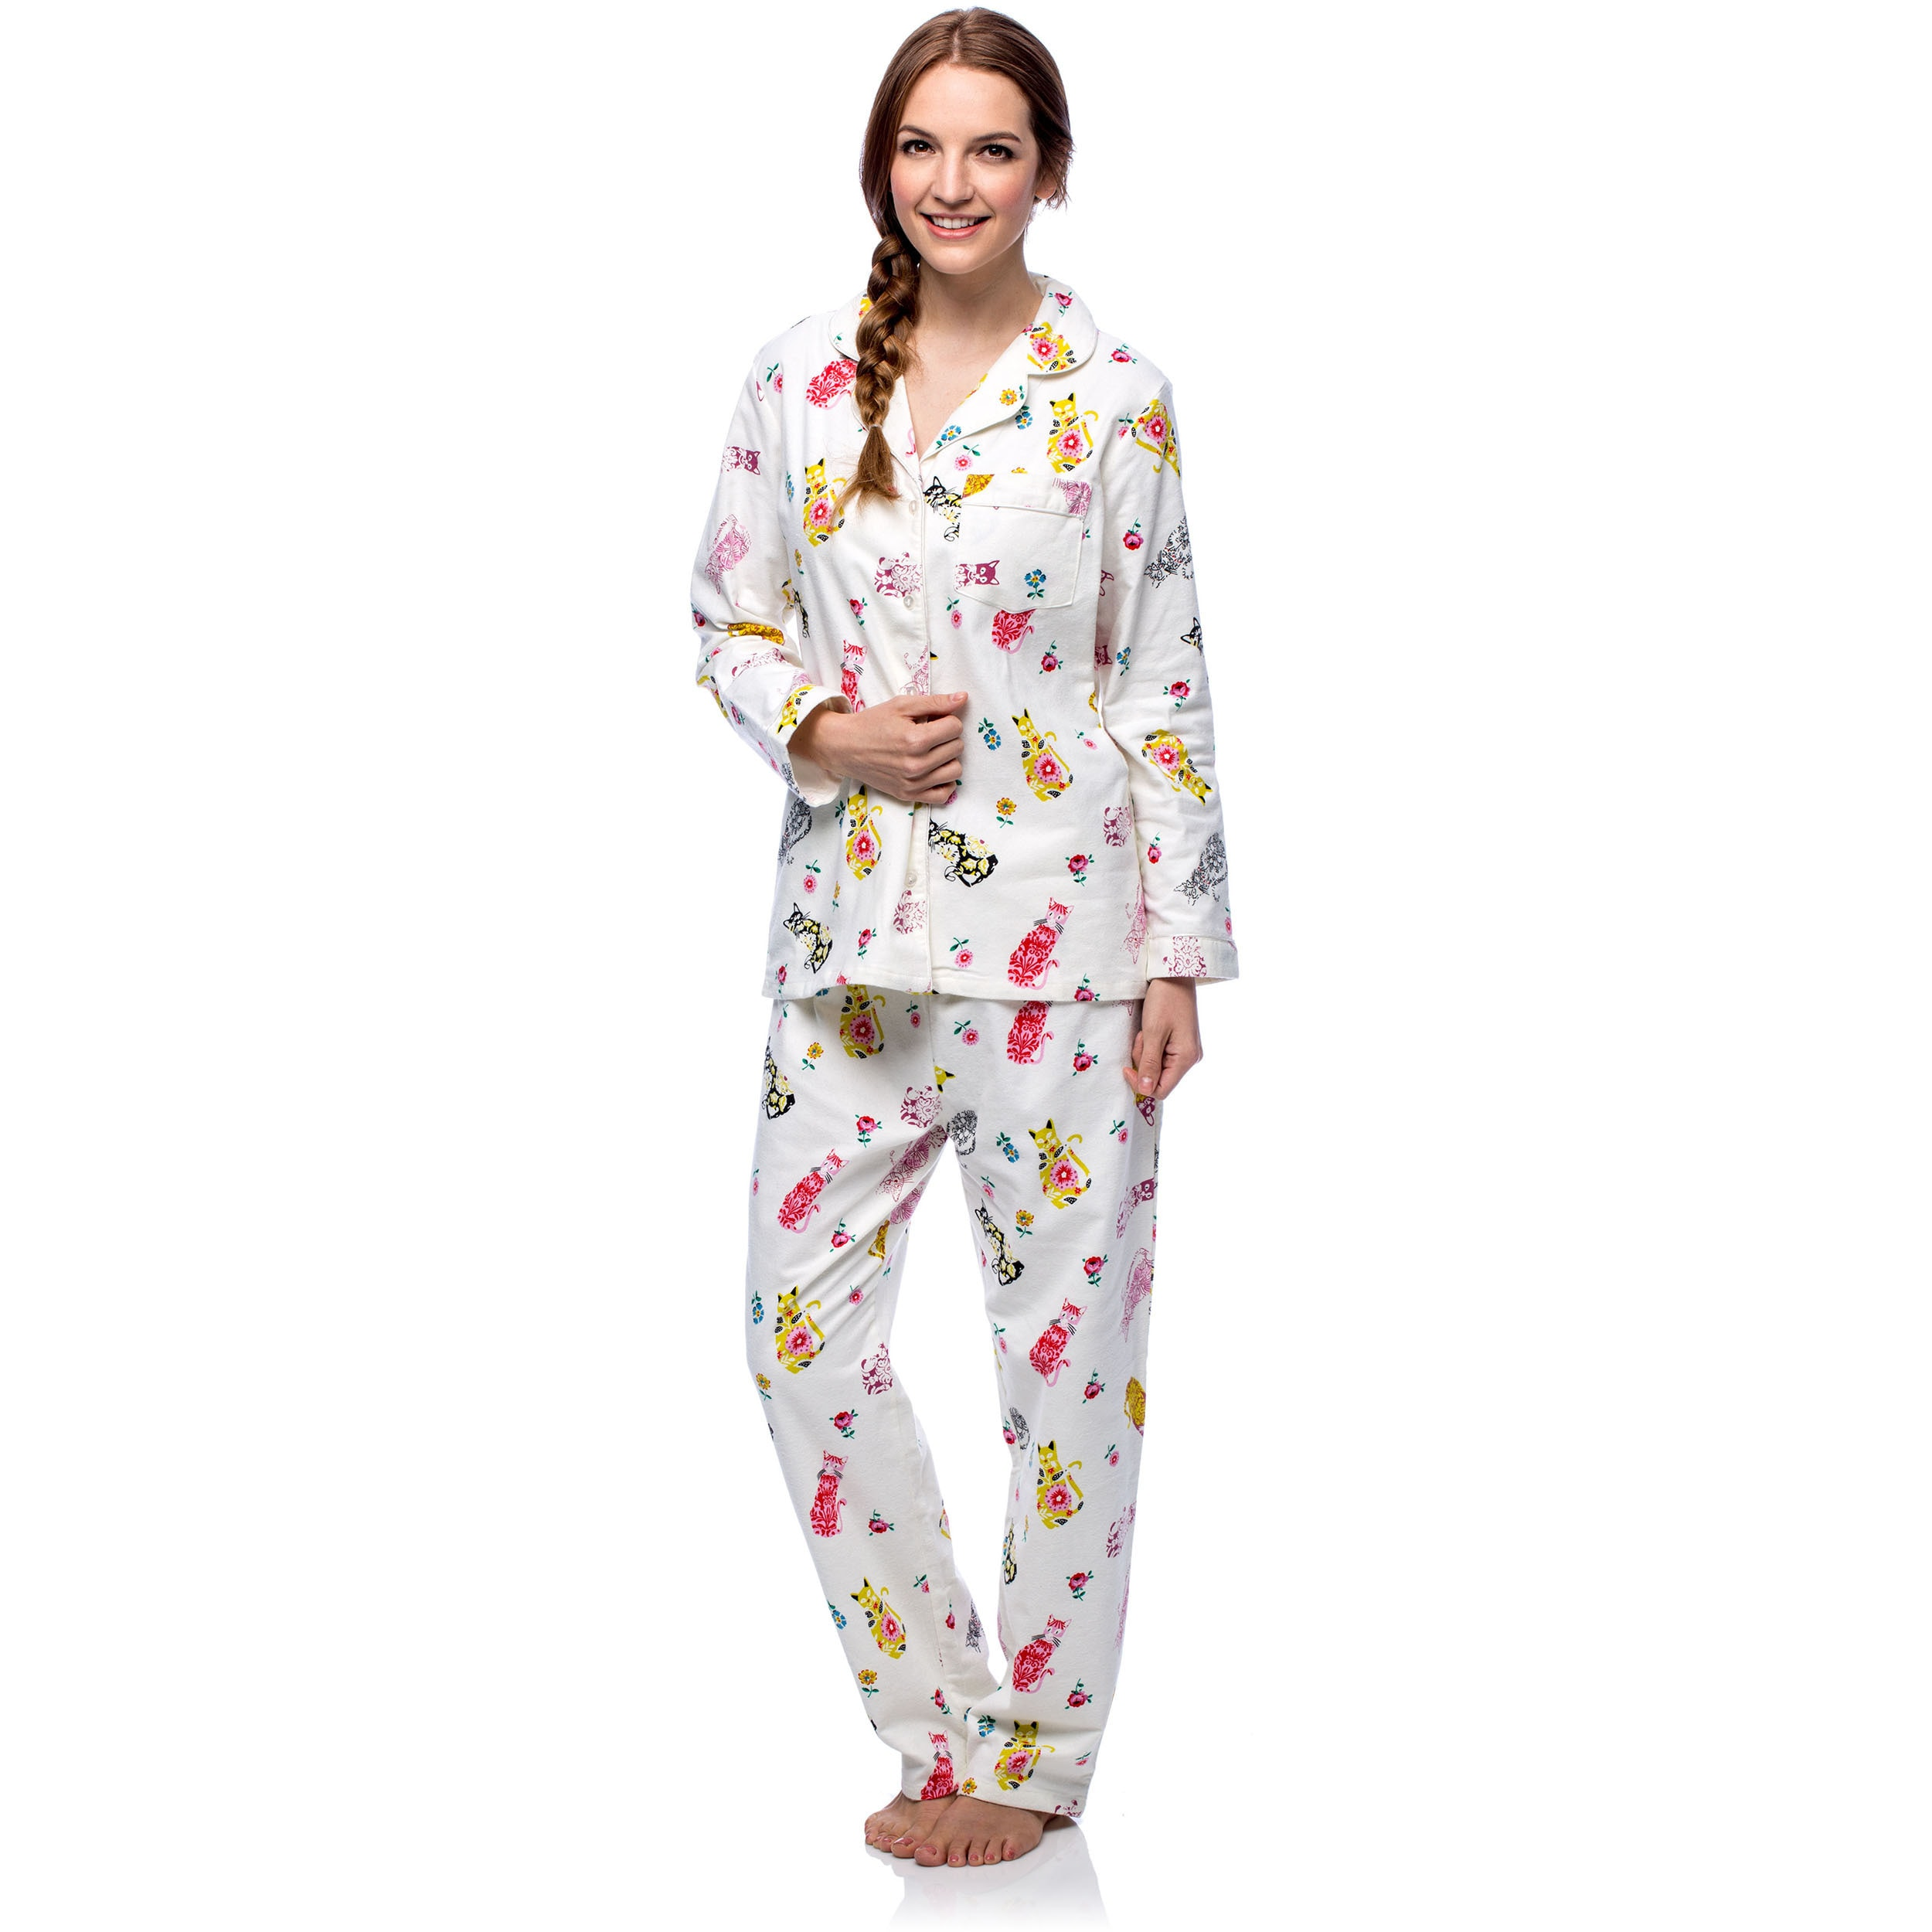 ruby pajama shop women the finch pajamas rosy comforter comfortable model s cat most flannel